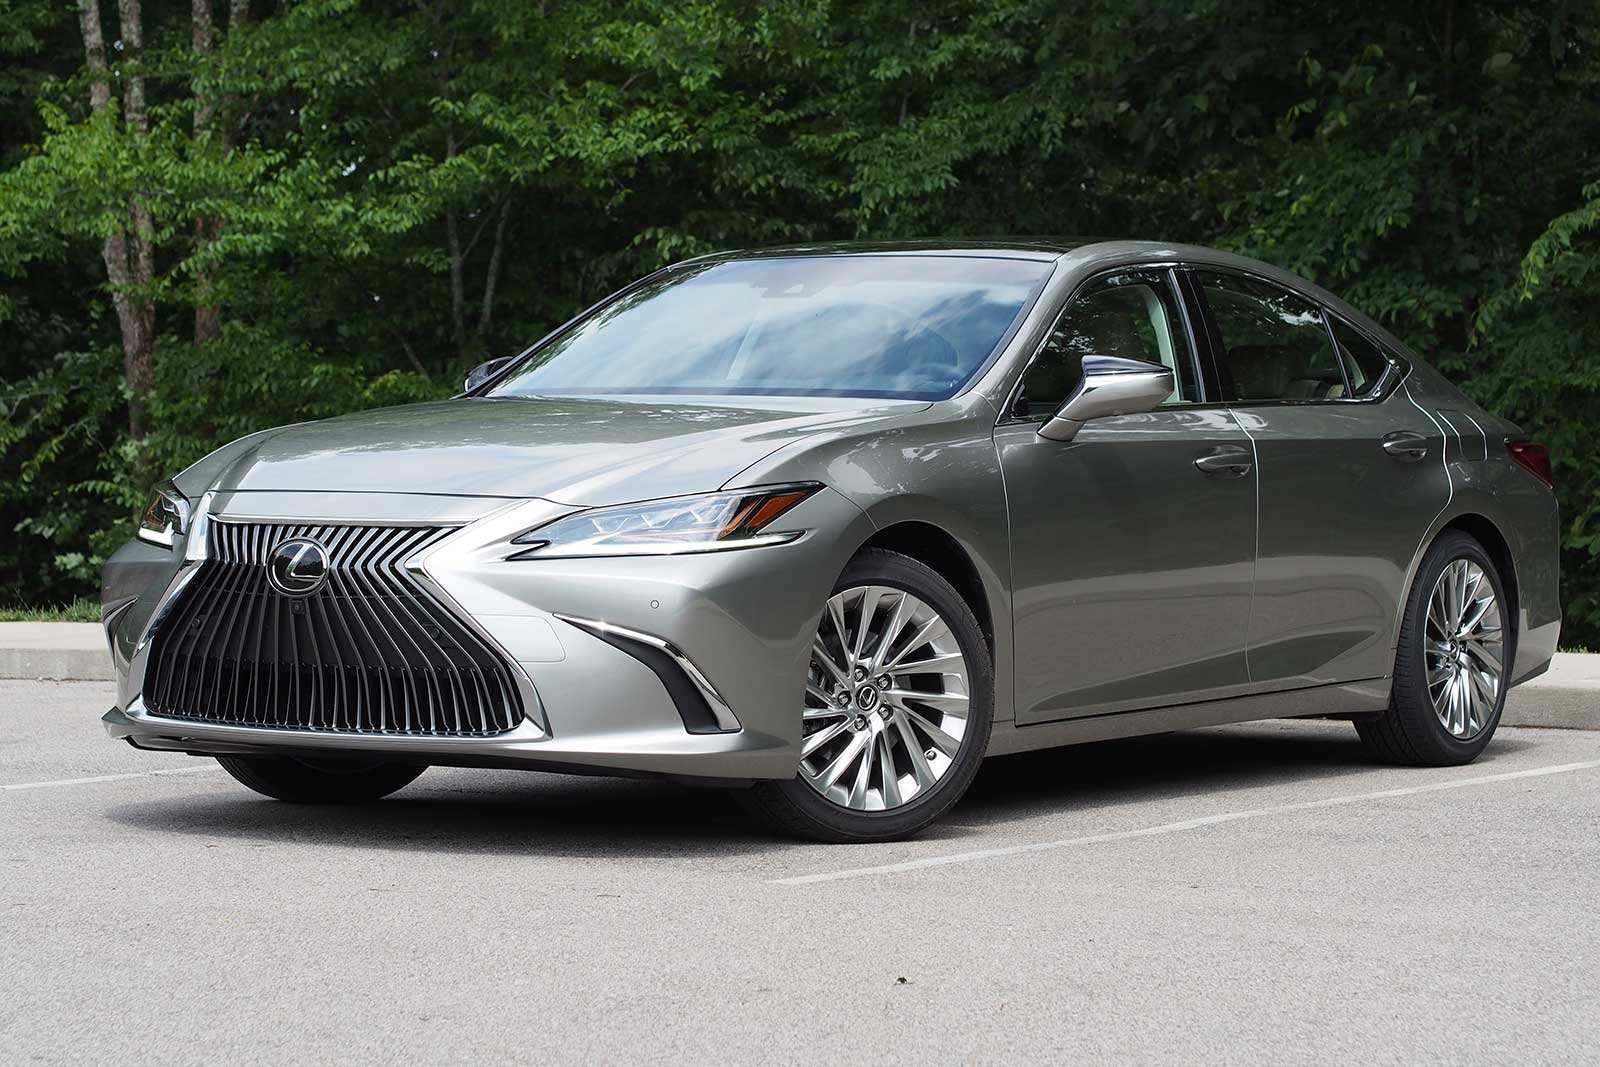 28 New Lexus 2019 Review Price by Lexus 2019 Review